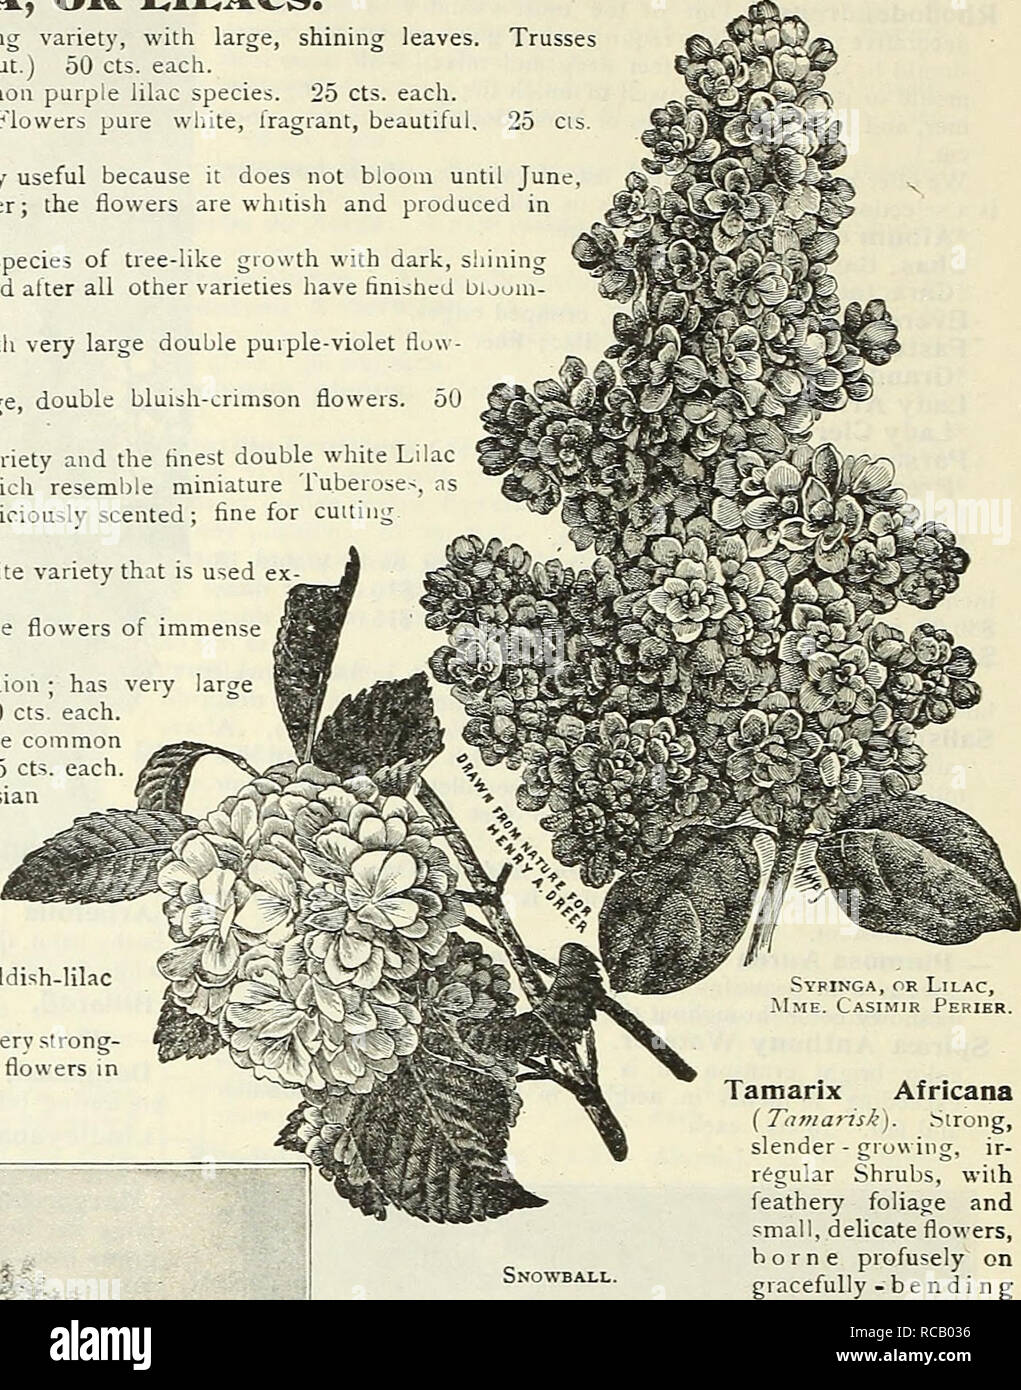 . Dreer's garden book : 1905. Seeds Catalogs; Nursery stock Catalogs; Gardening Equipment and supplies Catalogs; Flowers Seeds Catalogs; Vegetables Seeds Catalogs; Fruit Seeds Catalogs. Lilac Charles X. A strong, rapid growing variety, with large, shining leaves rather loose; large, reddish-purple. (See cut.) 50 cts. each. â â Common {Svr/no-a vulgaris). Fhe common purple lilac species. 25 cts. each. â Common White (^S. vulgaris alba). Flowers pure white, fragrant, beautifu each. â Emodi. Entirely distinct, and particularly useful because it does not bloom until June, when all other varieties  - Stock Image